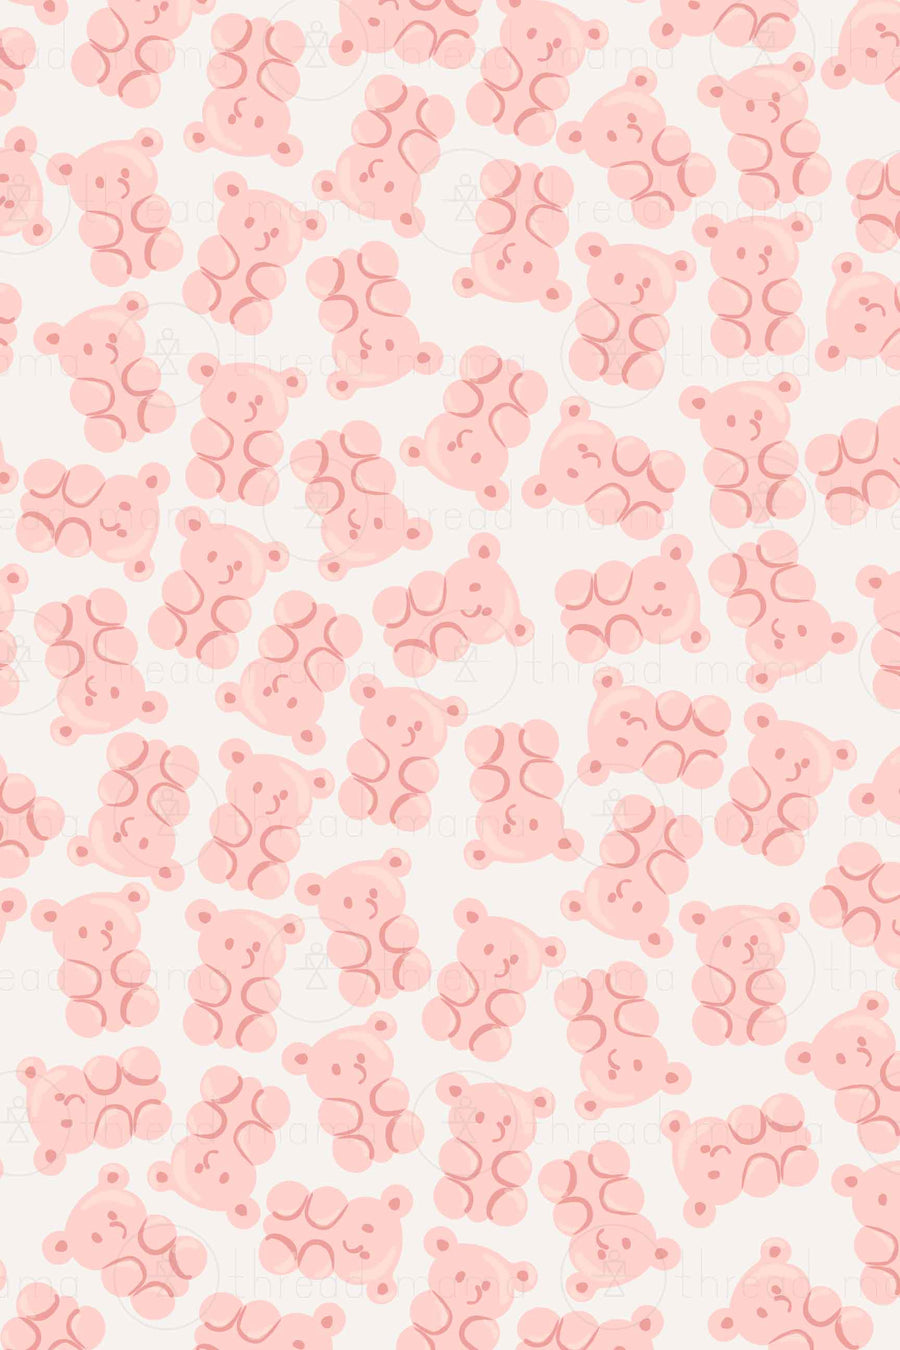 Gummy Bear Collection (Background Patterns)